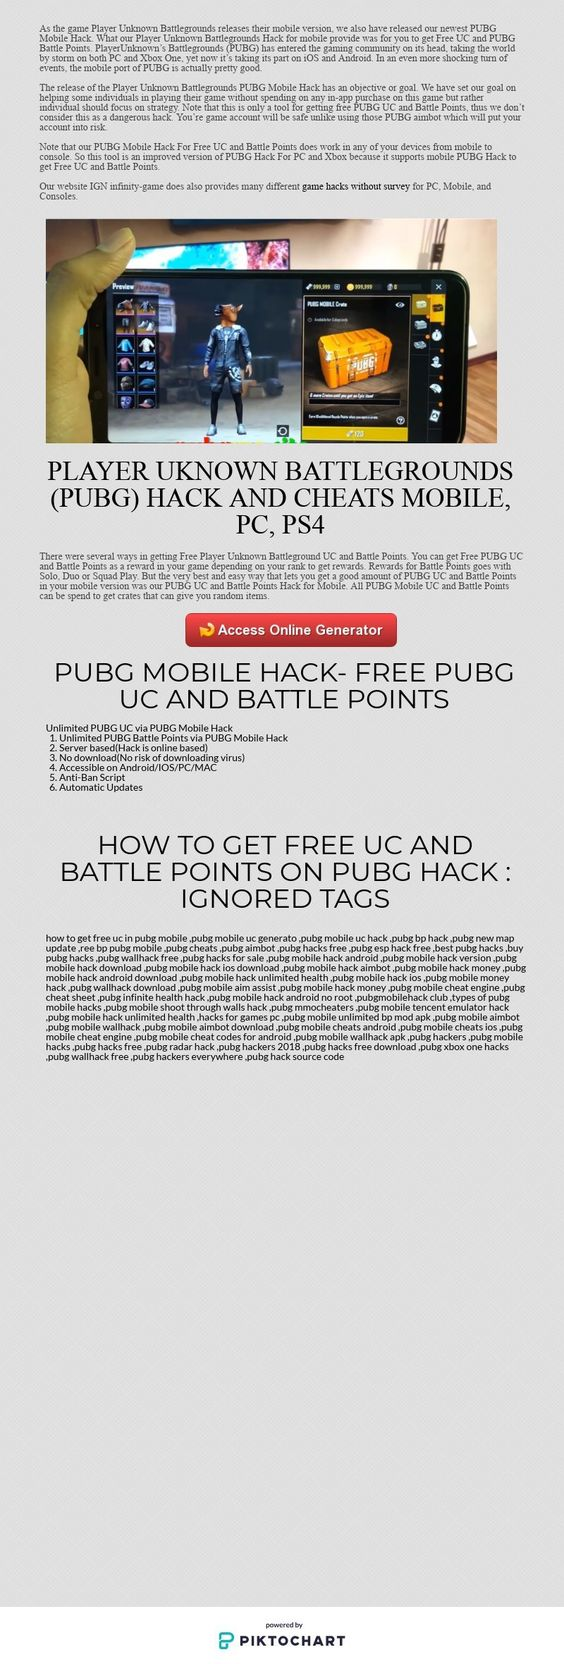 PUBG Mobile Hack Free UC and Battle Points No Survey working as of